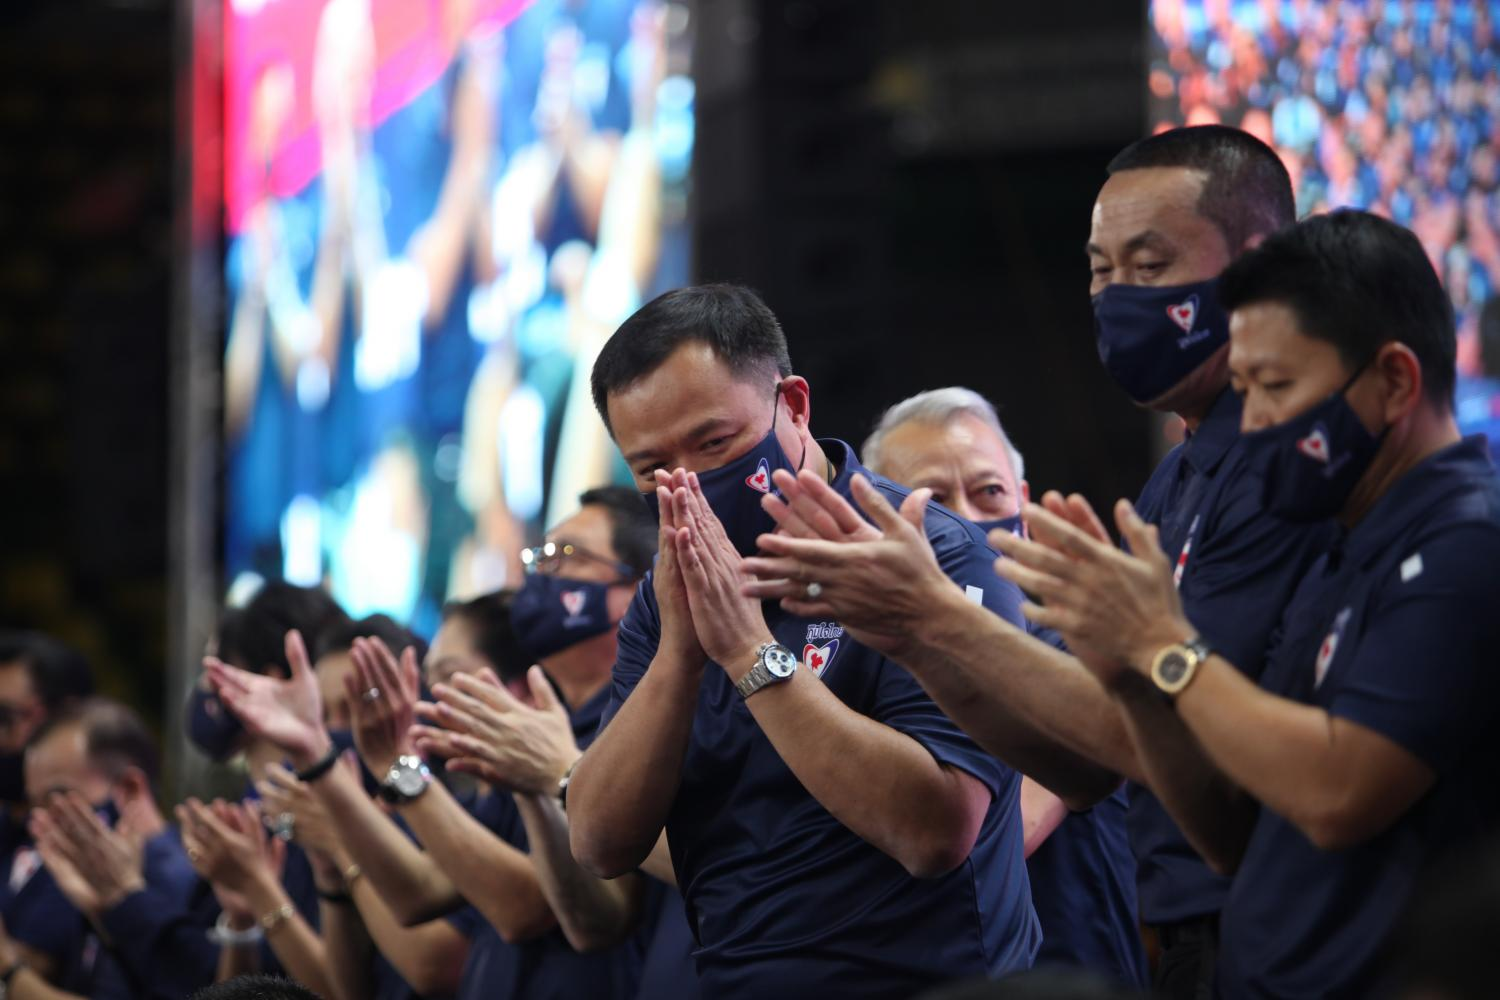 Bhumjaithai leader Anutin Charnvirakul greets executives and members with a 'wai' at the party's annual general assembly at the Nimibutr building inside the National Stadium on Saturday.